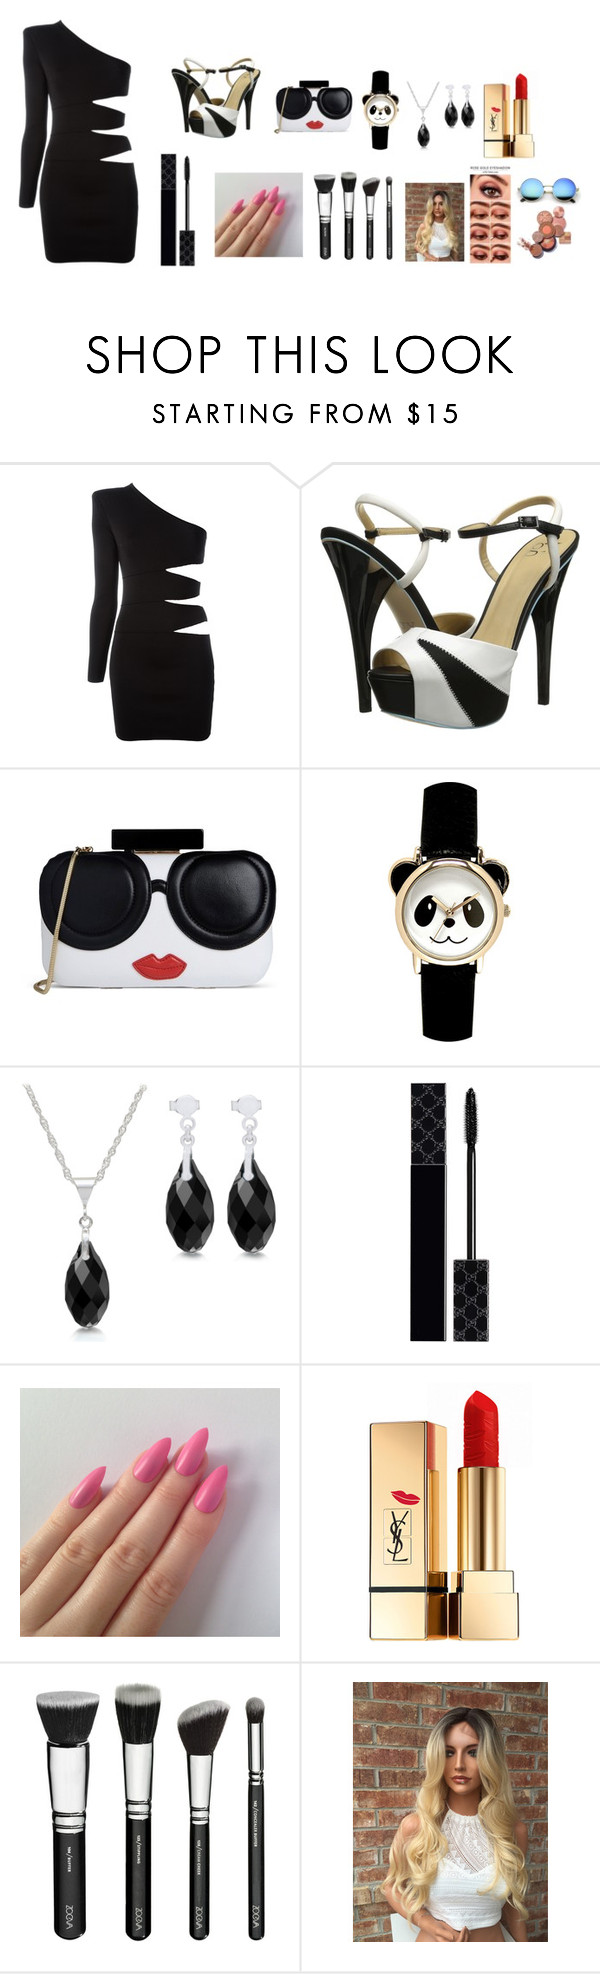 """sinpl dree"" by taylorswift-31 ❤ liked on Polyvore featuring Balmain, gx by Gwen Stefani, Alice + Olivia, Gucci and Yves Saint Laurent"